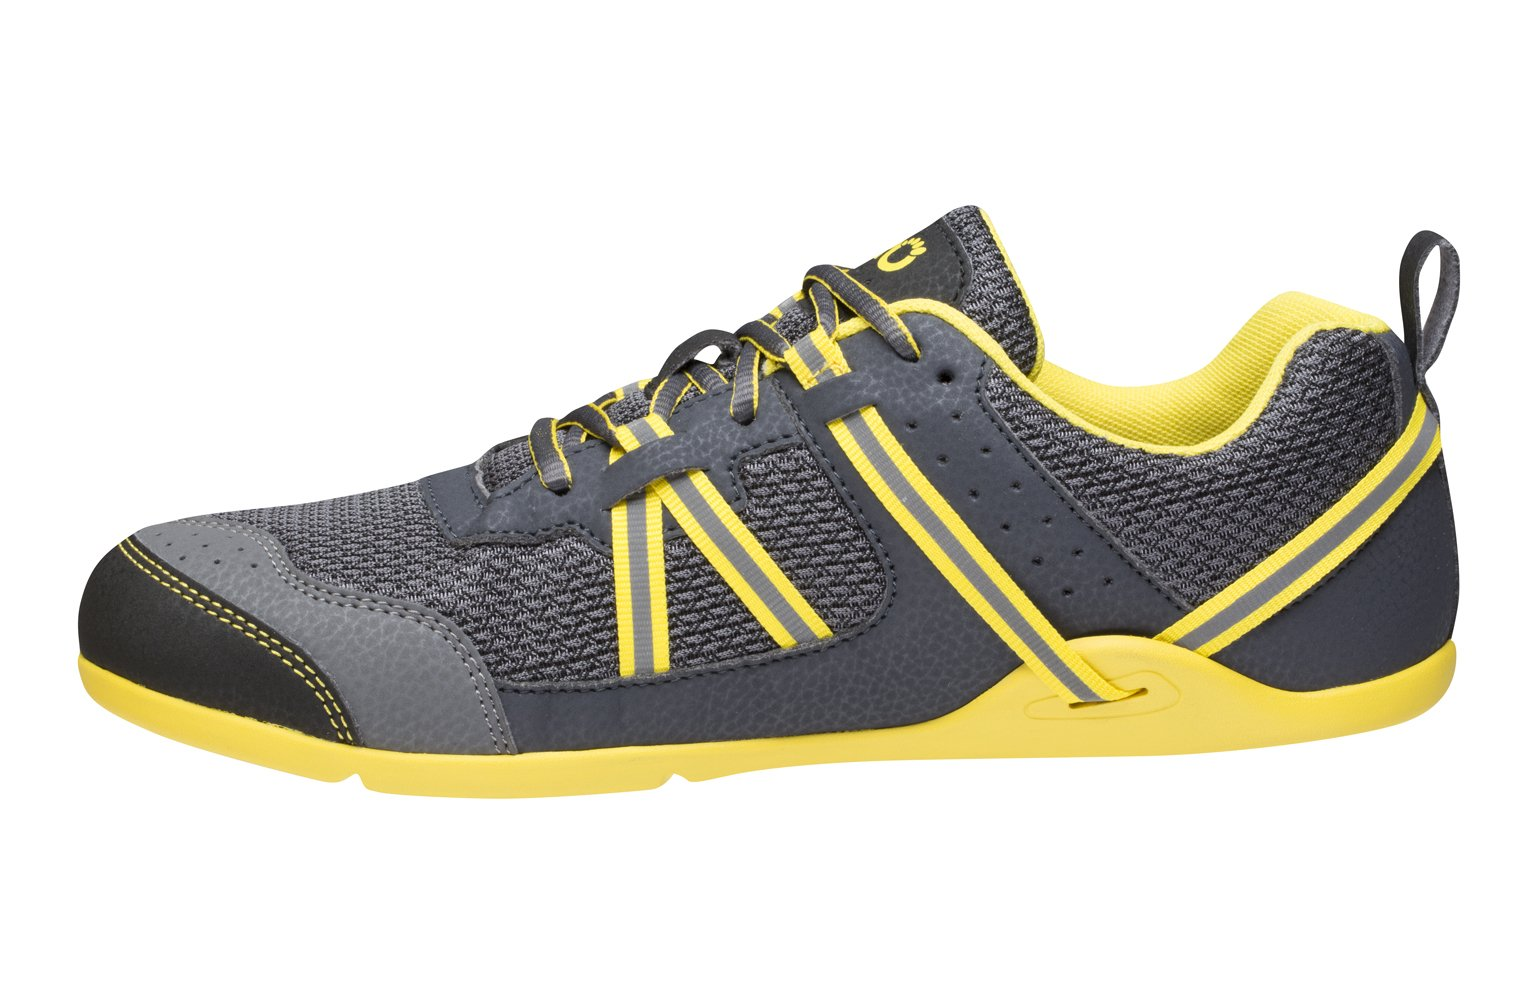 Xero Shoes Prio - Men's Minimalist Barefoot Trail and Road Running Shoe - Fitness, Athletic Zero Drop Sneaker - True Yellow by Xero Shoes (Image #4)